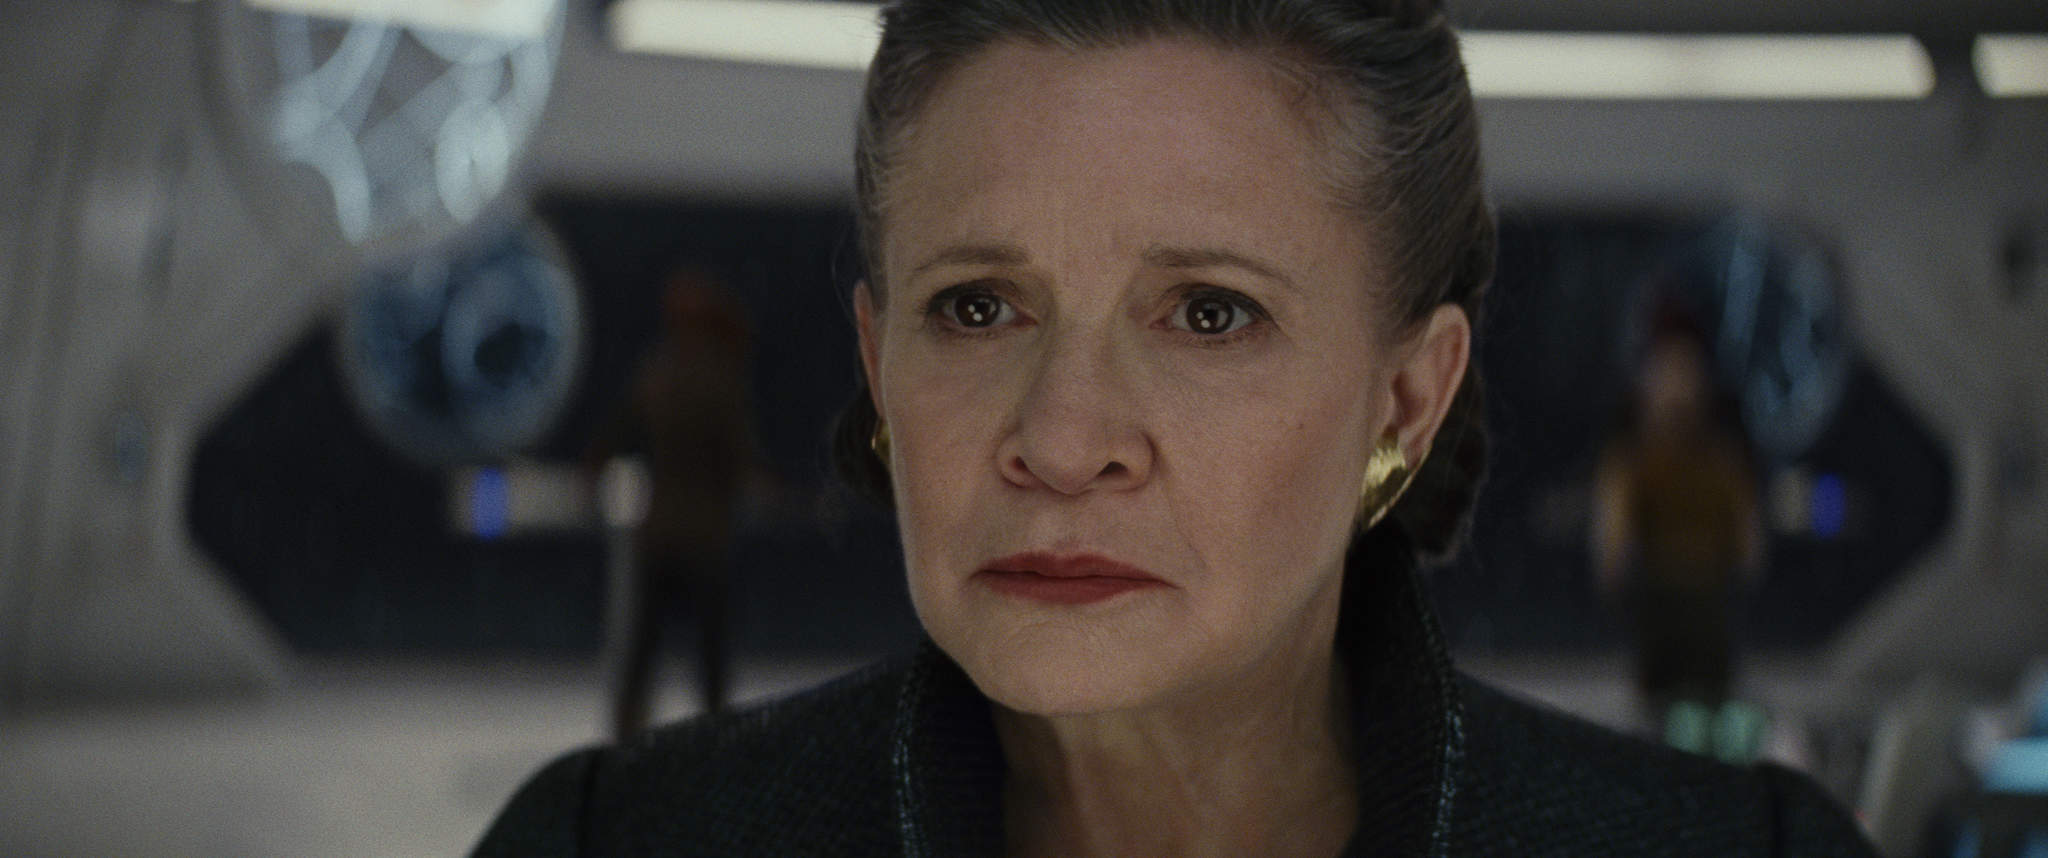 The Last Jedi is the first properly feminist Star Wars